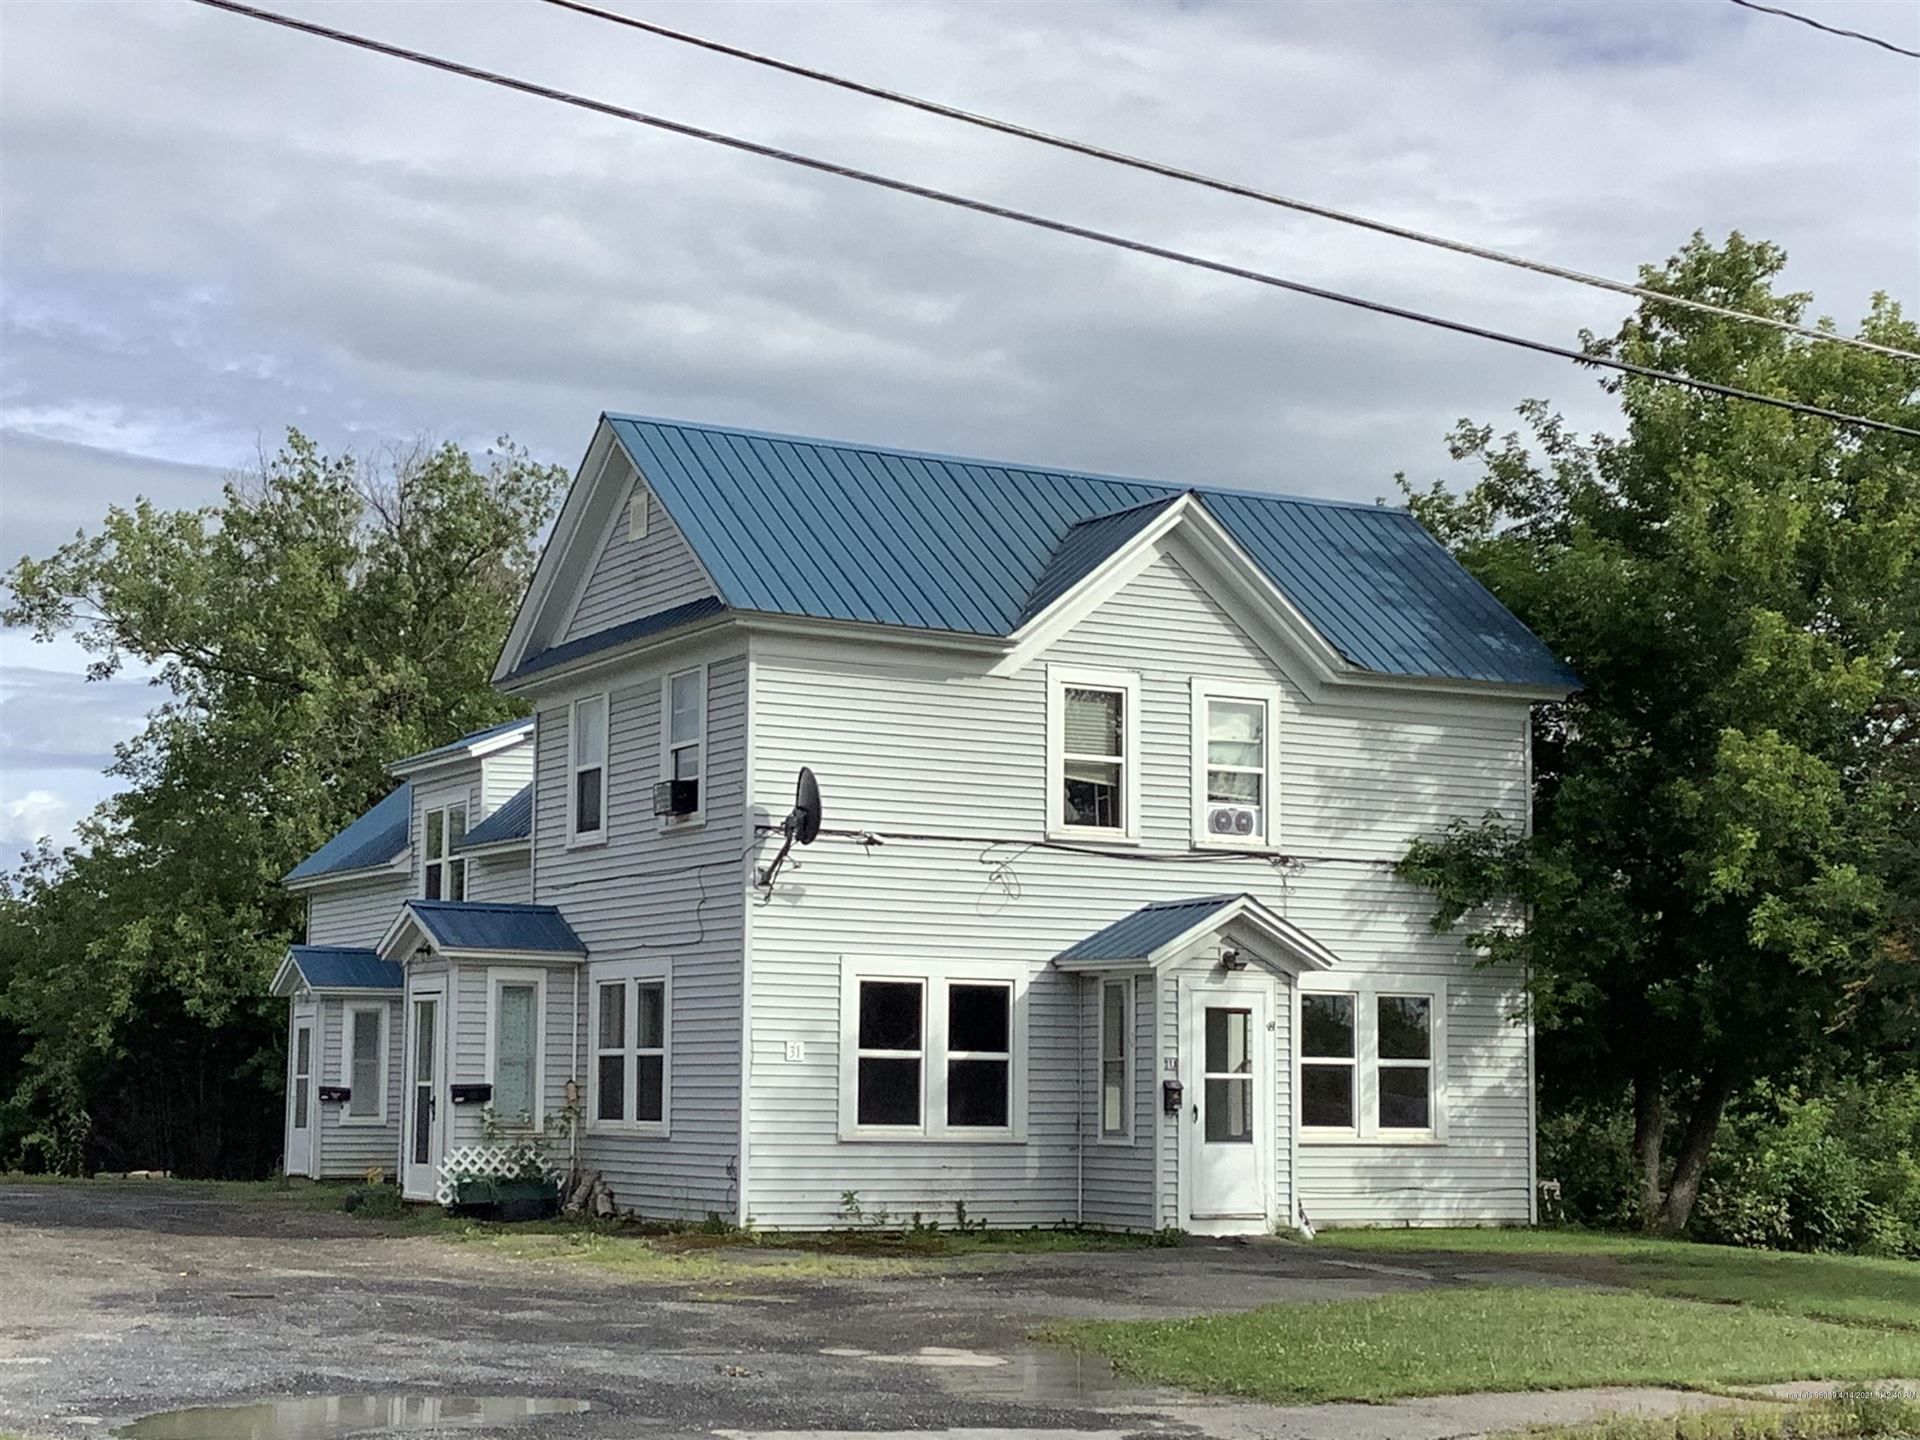 Photo of 31 Forest Avenue, Fort Fairfield, ME 04742 (MLS # 1487686)